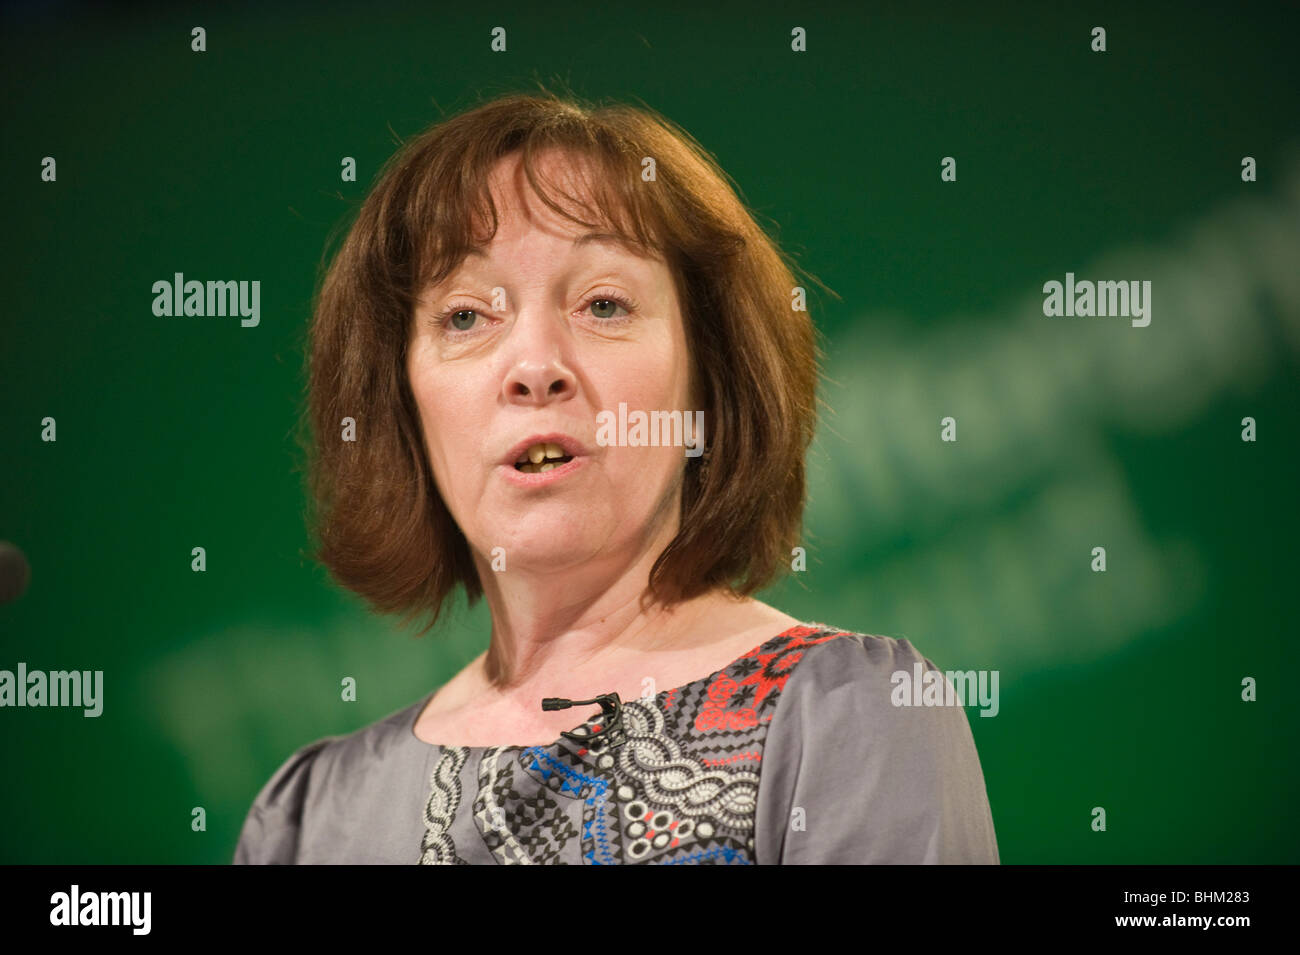 Jill Evans MEP Plaid Cymru addressing the party's 2010 Spring Conference, Cardiff, South Wales, UK Stock Photo